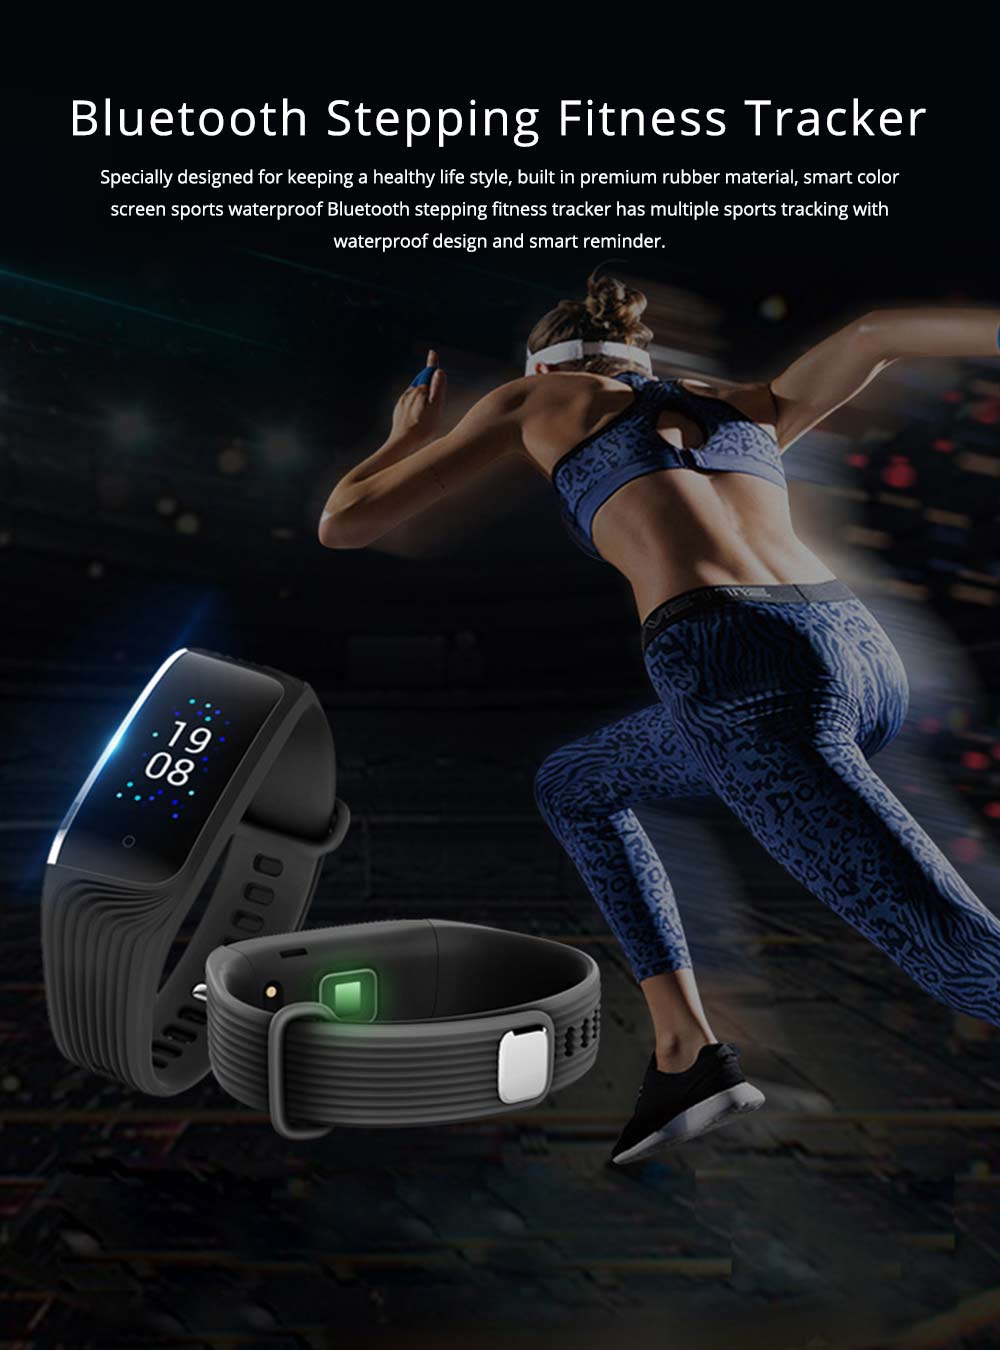 Smart Color Screen Sports Waterproof Bluetooth Stepping Fitness Tracker for Sleep Anti-lost Heart Rate Monitoring 0